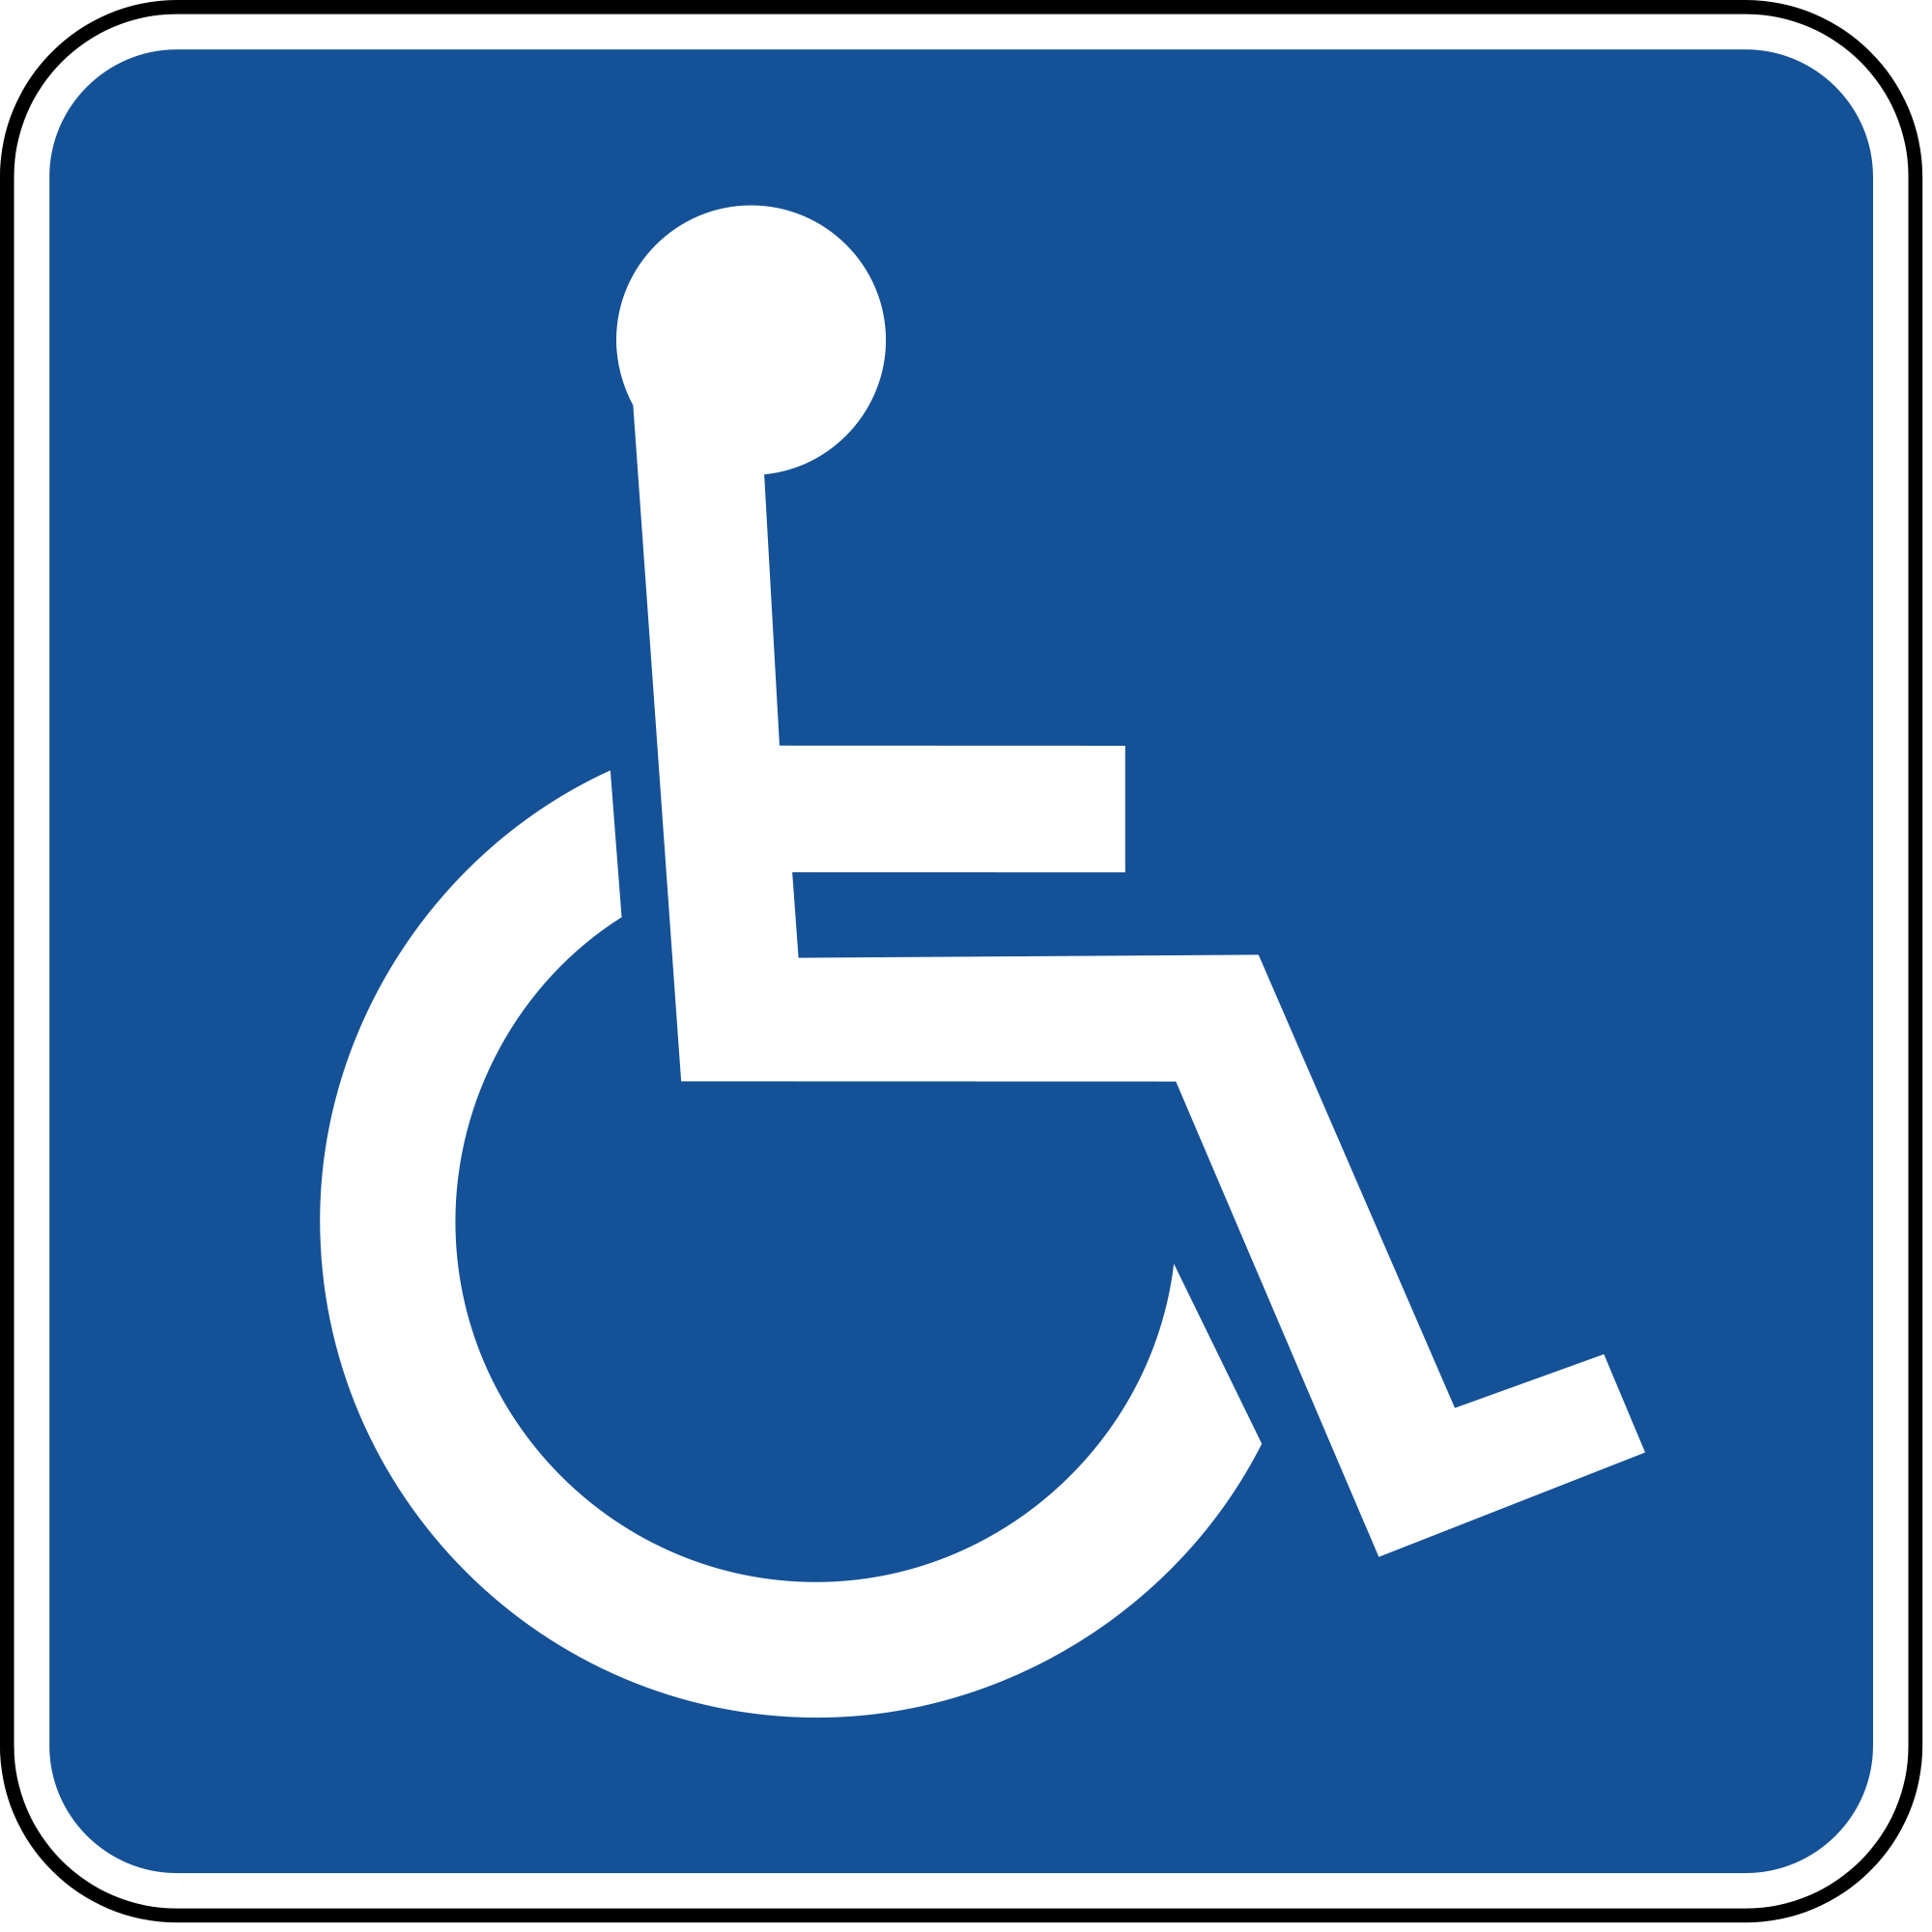 handicap parking sign in blue